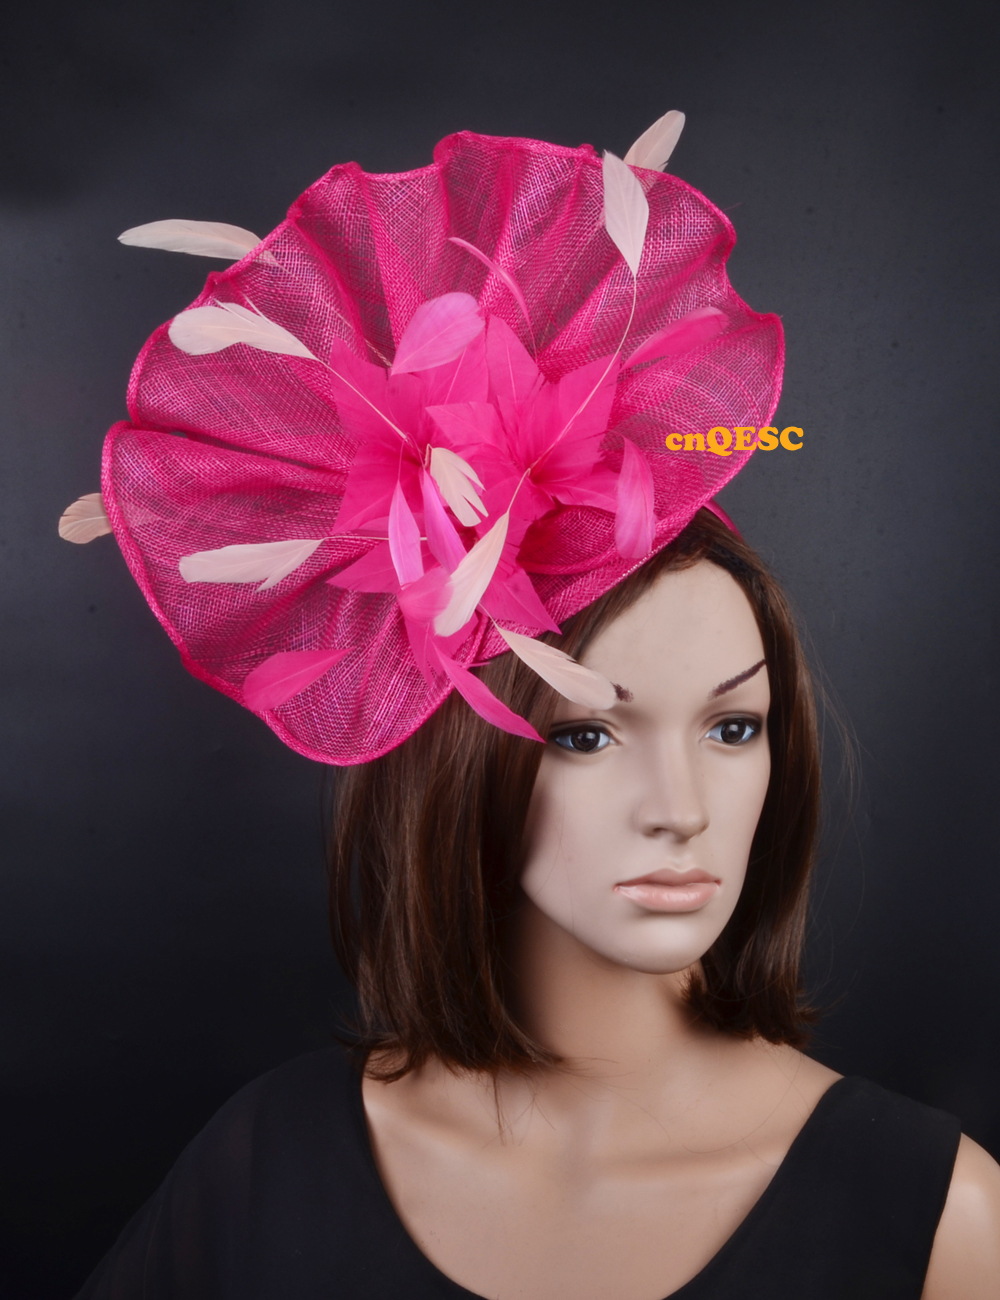 1eb52590bf7 NEW Unique design.Coral pink ivory Large feather fascinator sinamay  fascinator formal hat kentucky derby hat wedding hat.-in Women s Hair  Accessories from ...